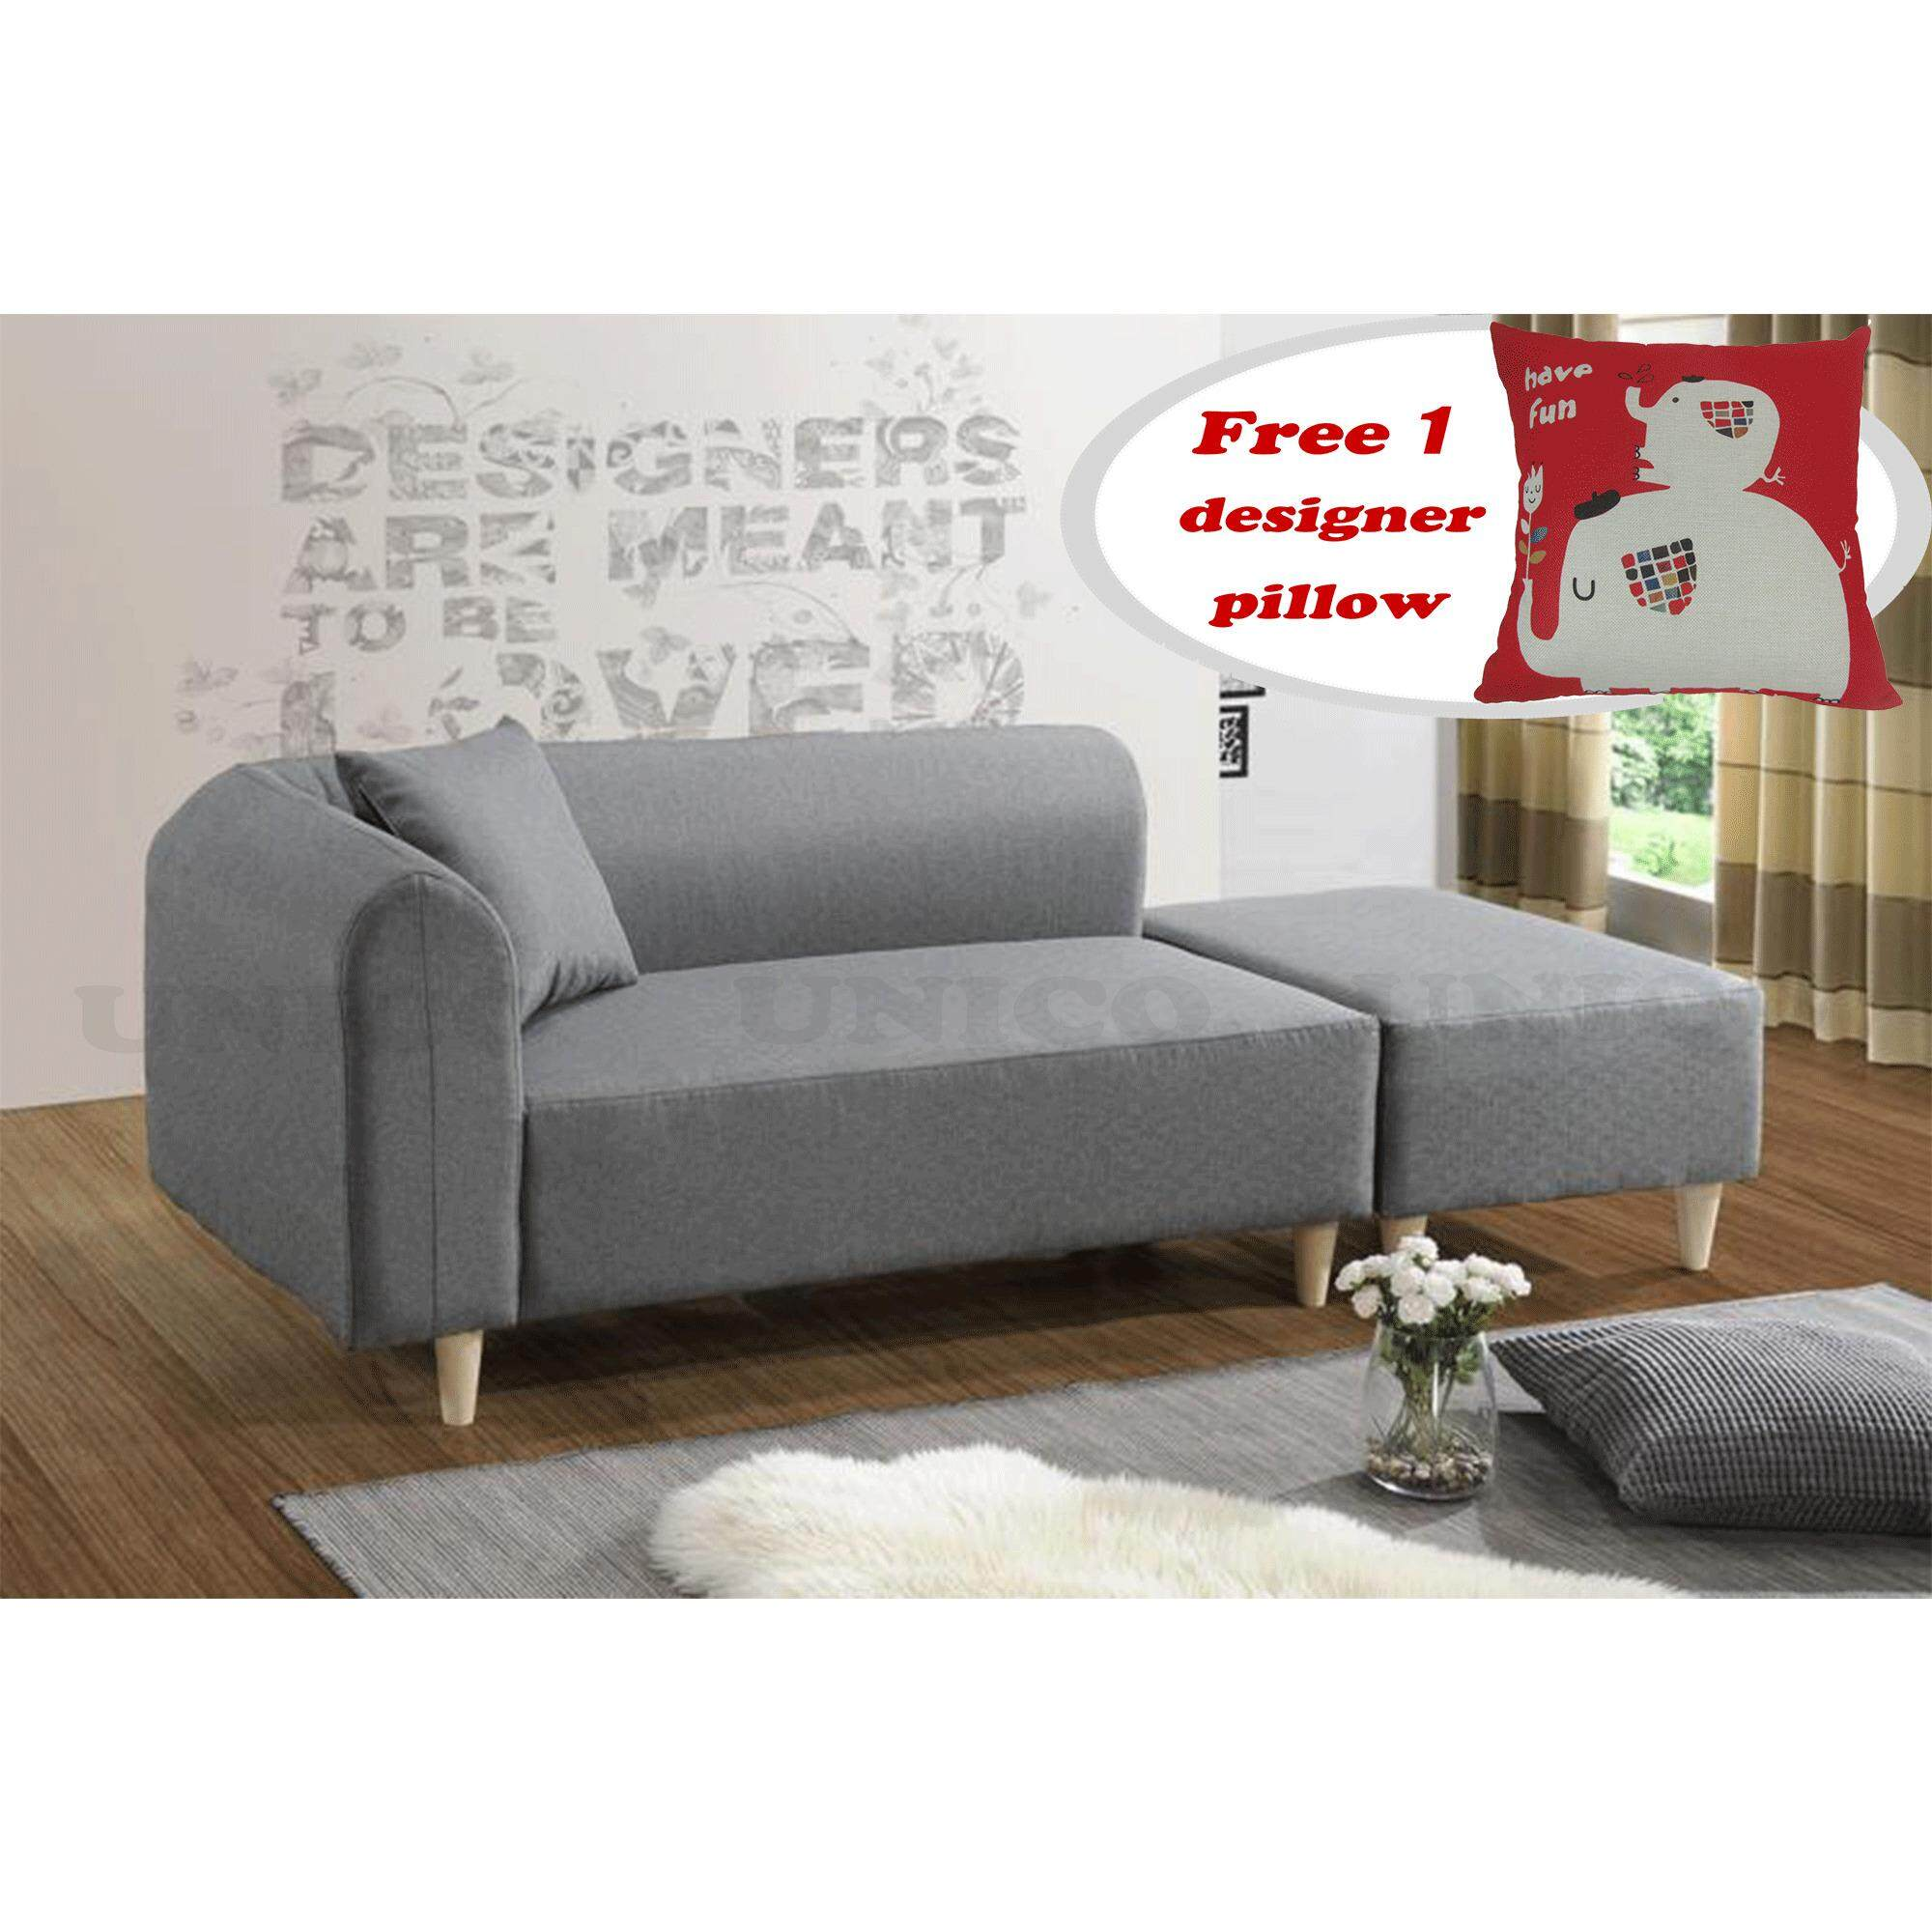 cushion couch stretch pique sure box furniture bed reviews cover wayfair bug fit slipcover pdx sofa